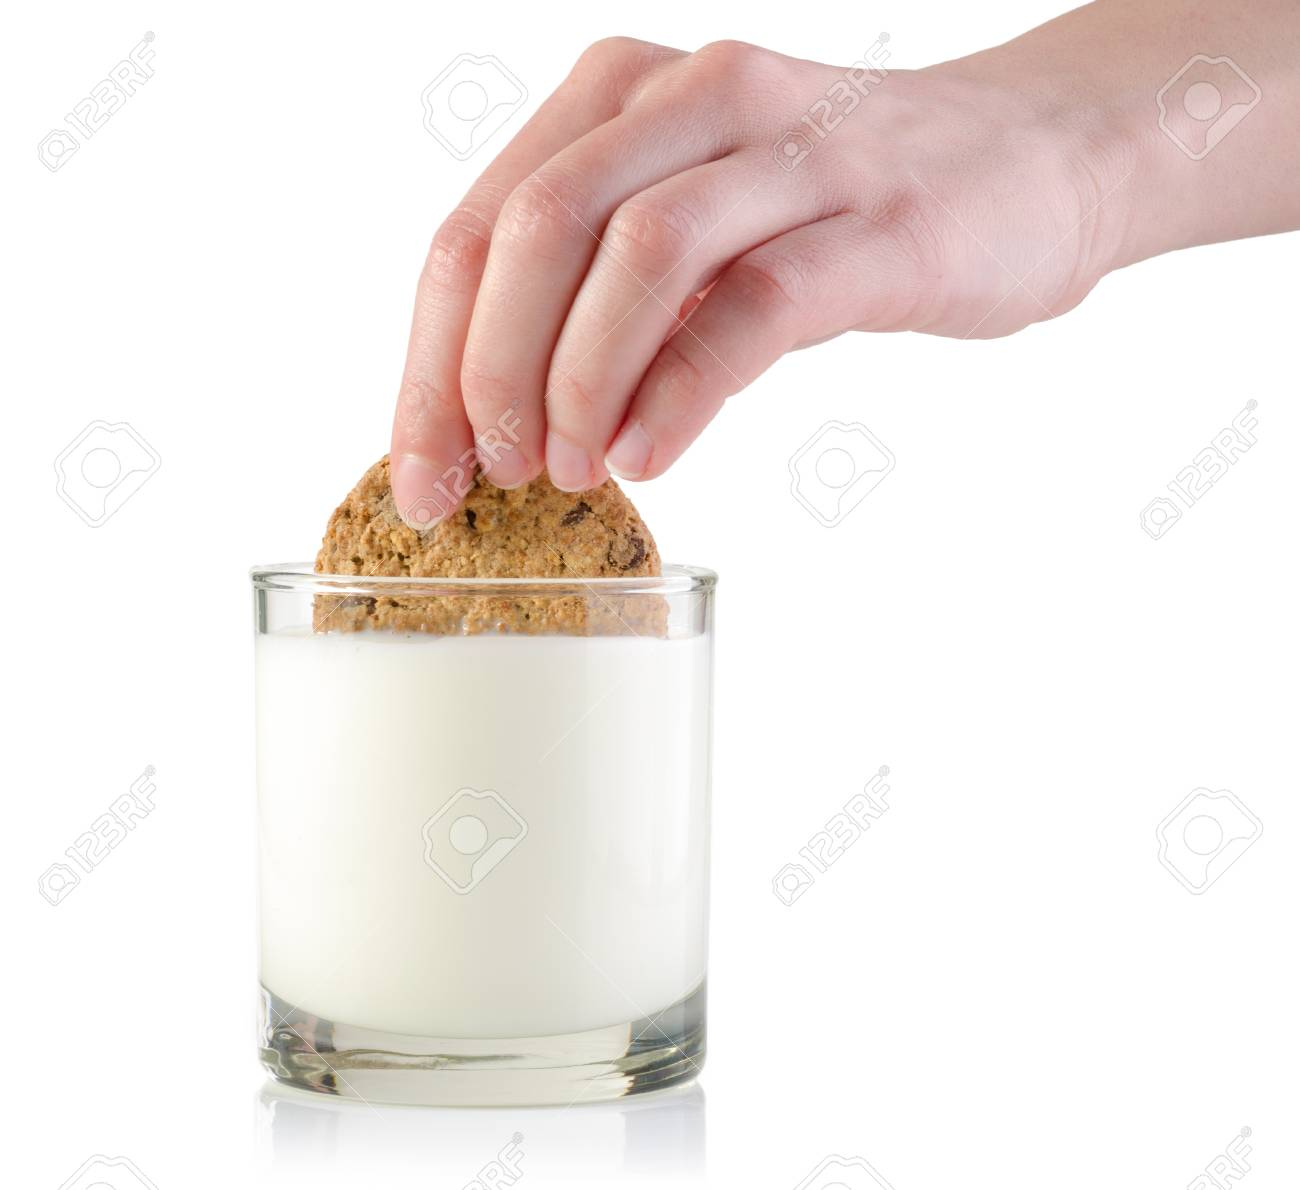 Image result for dunking cookies in milk